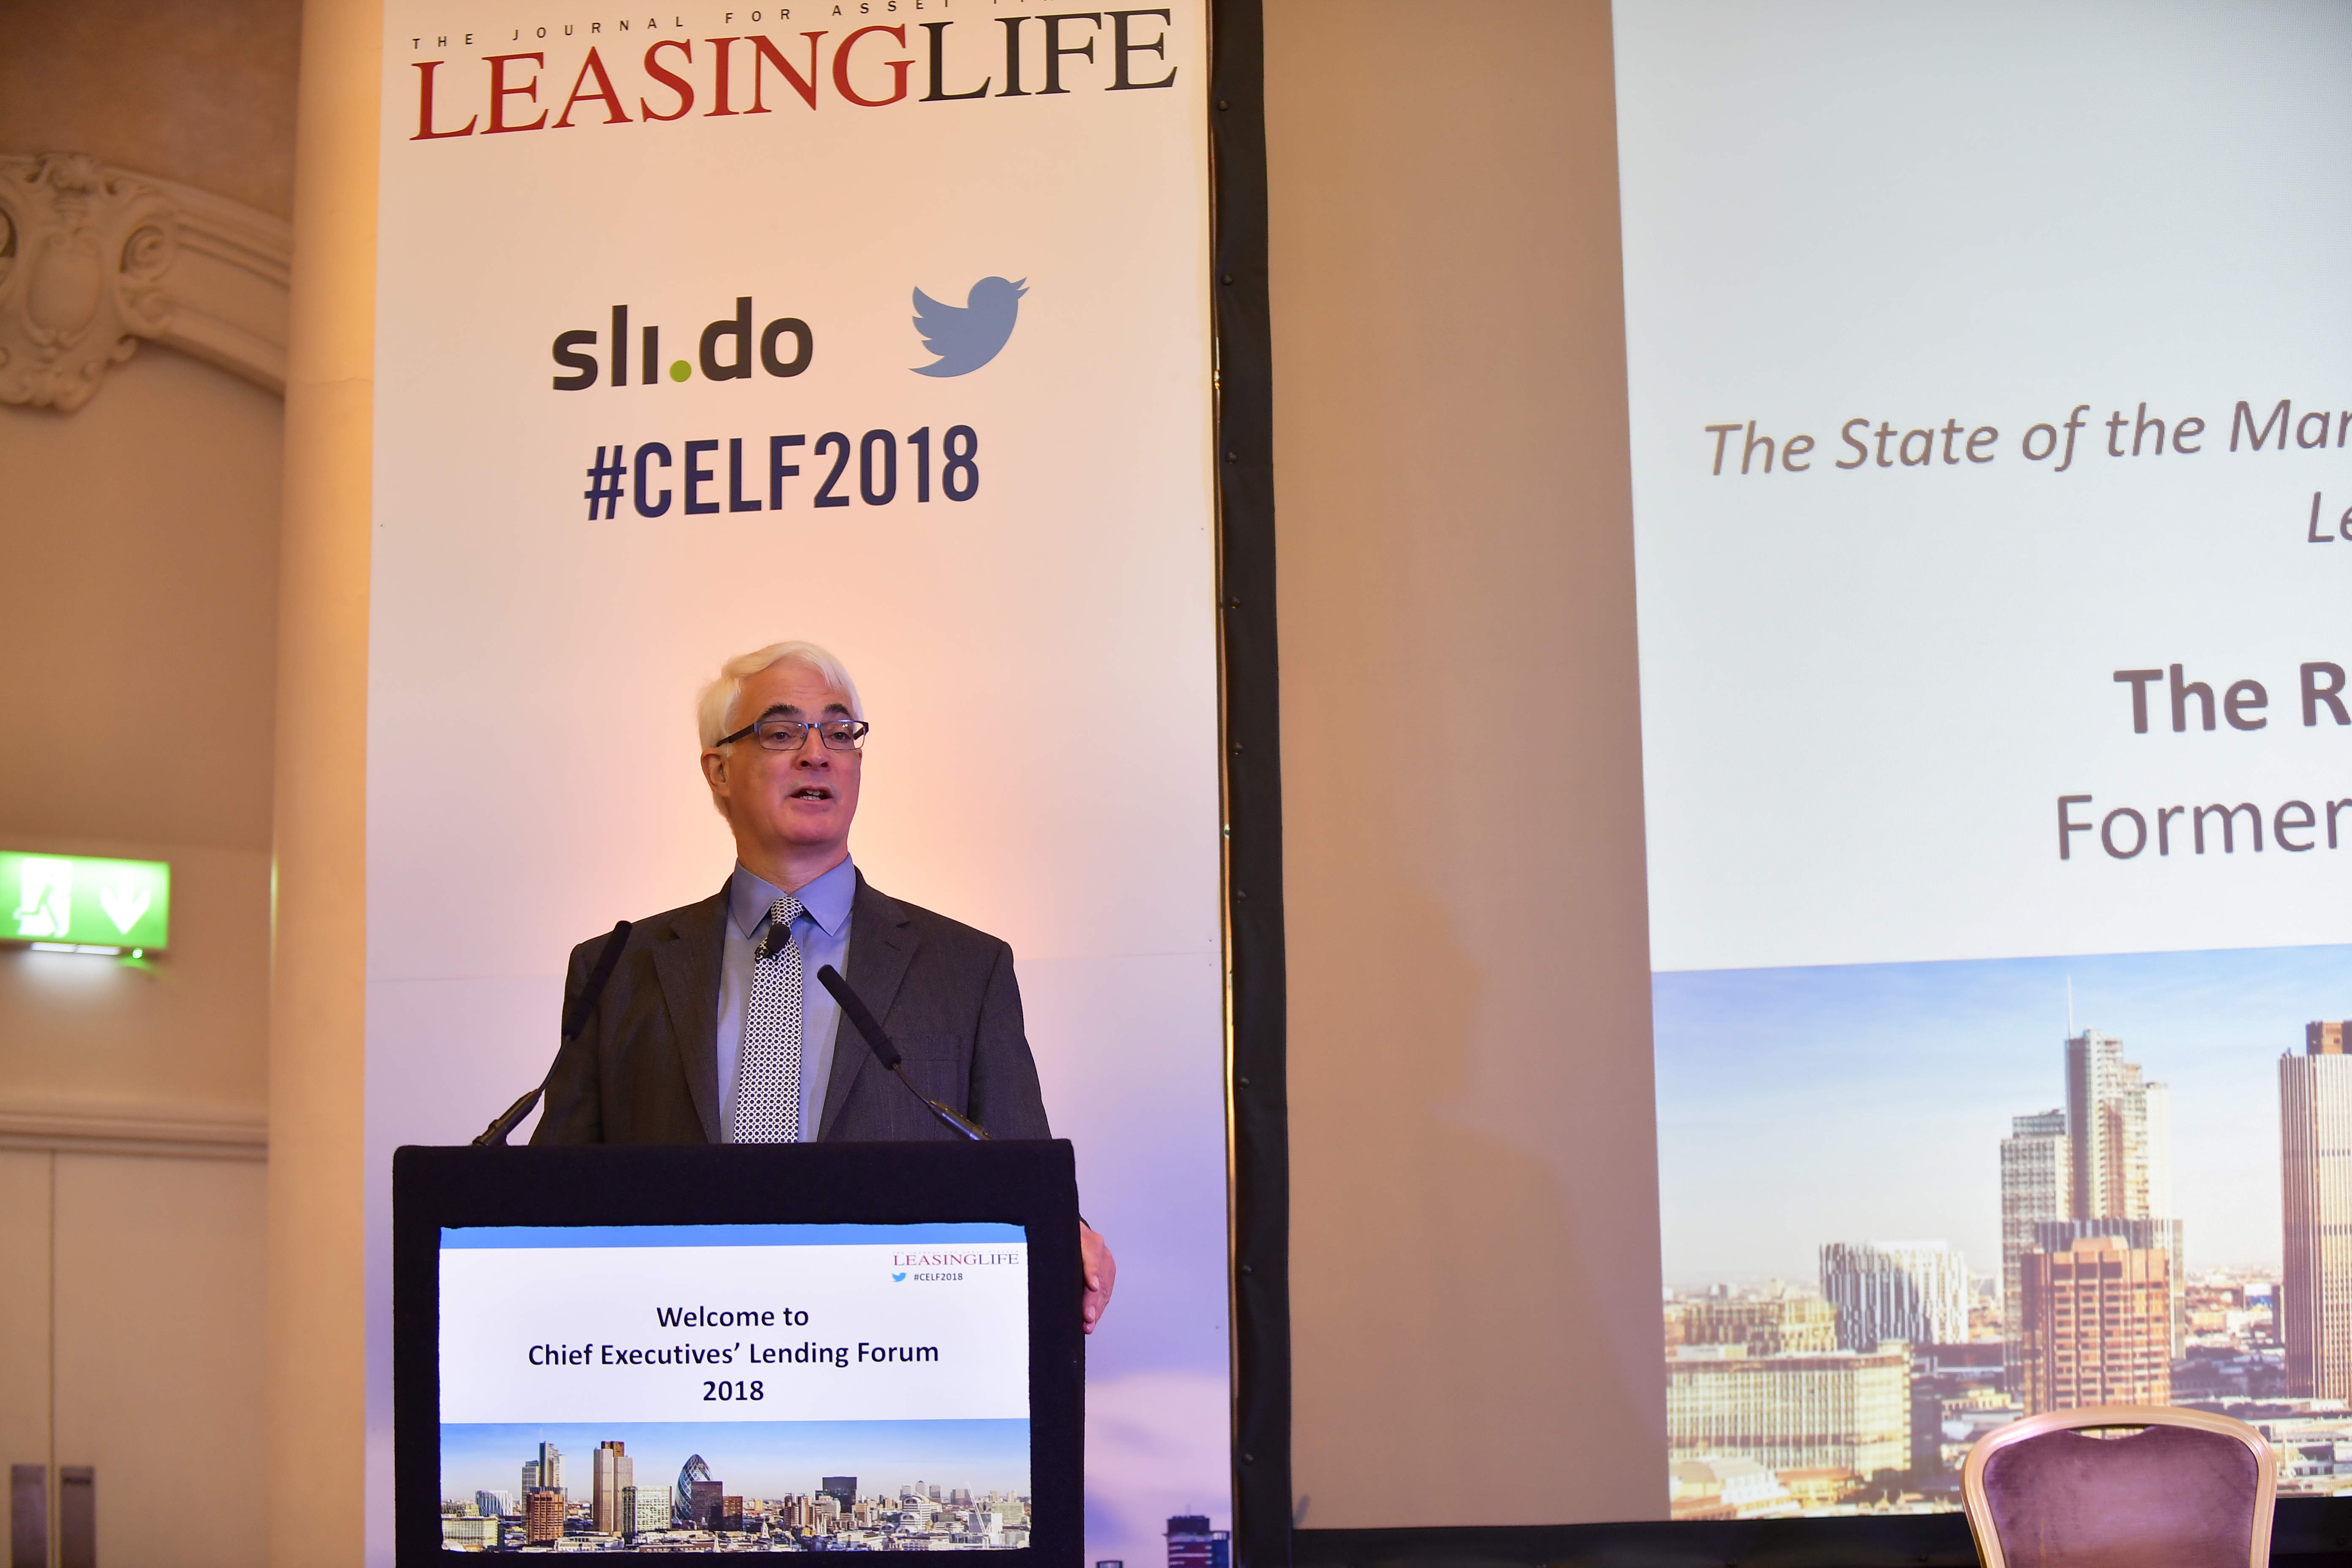 Alistair Darling: a financial perspective